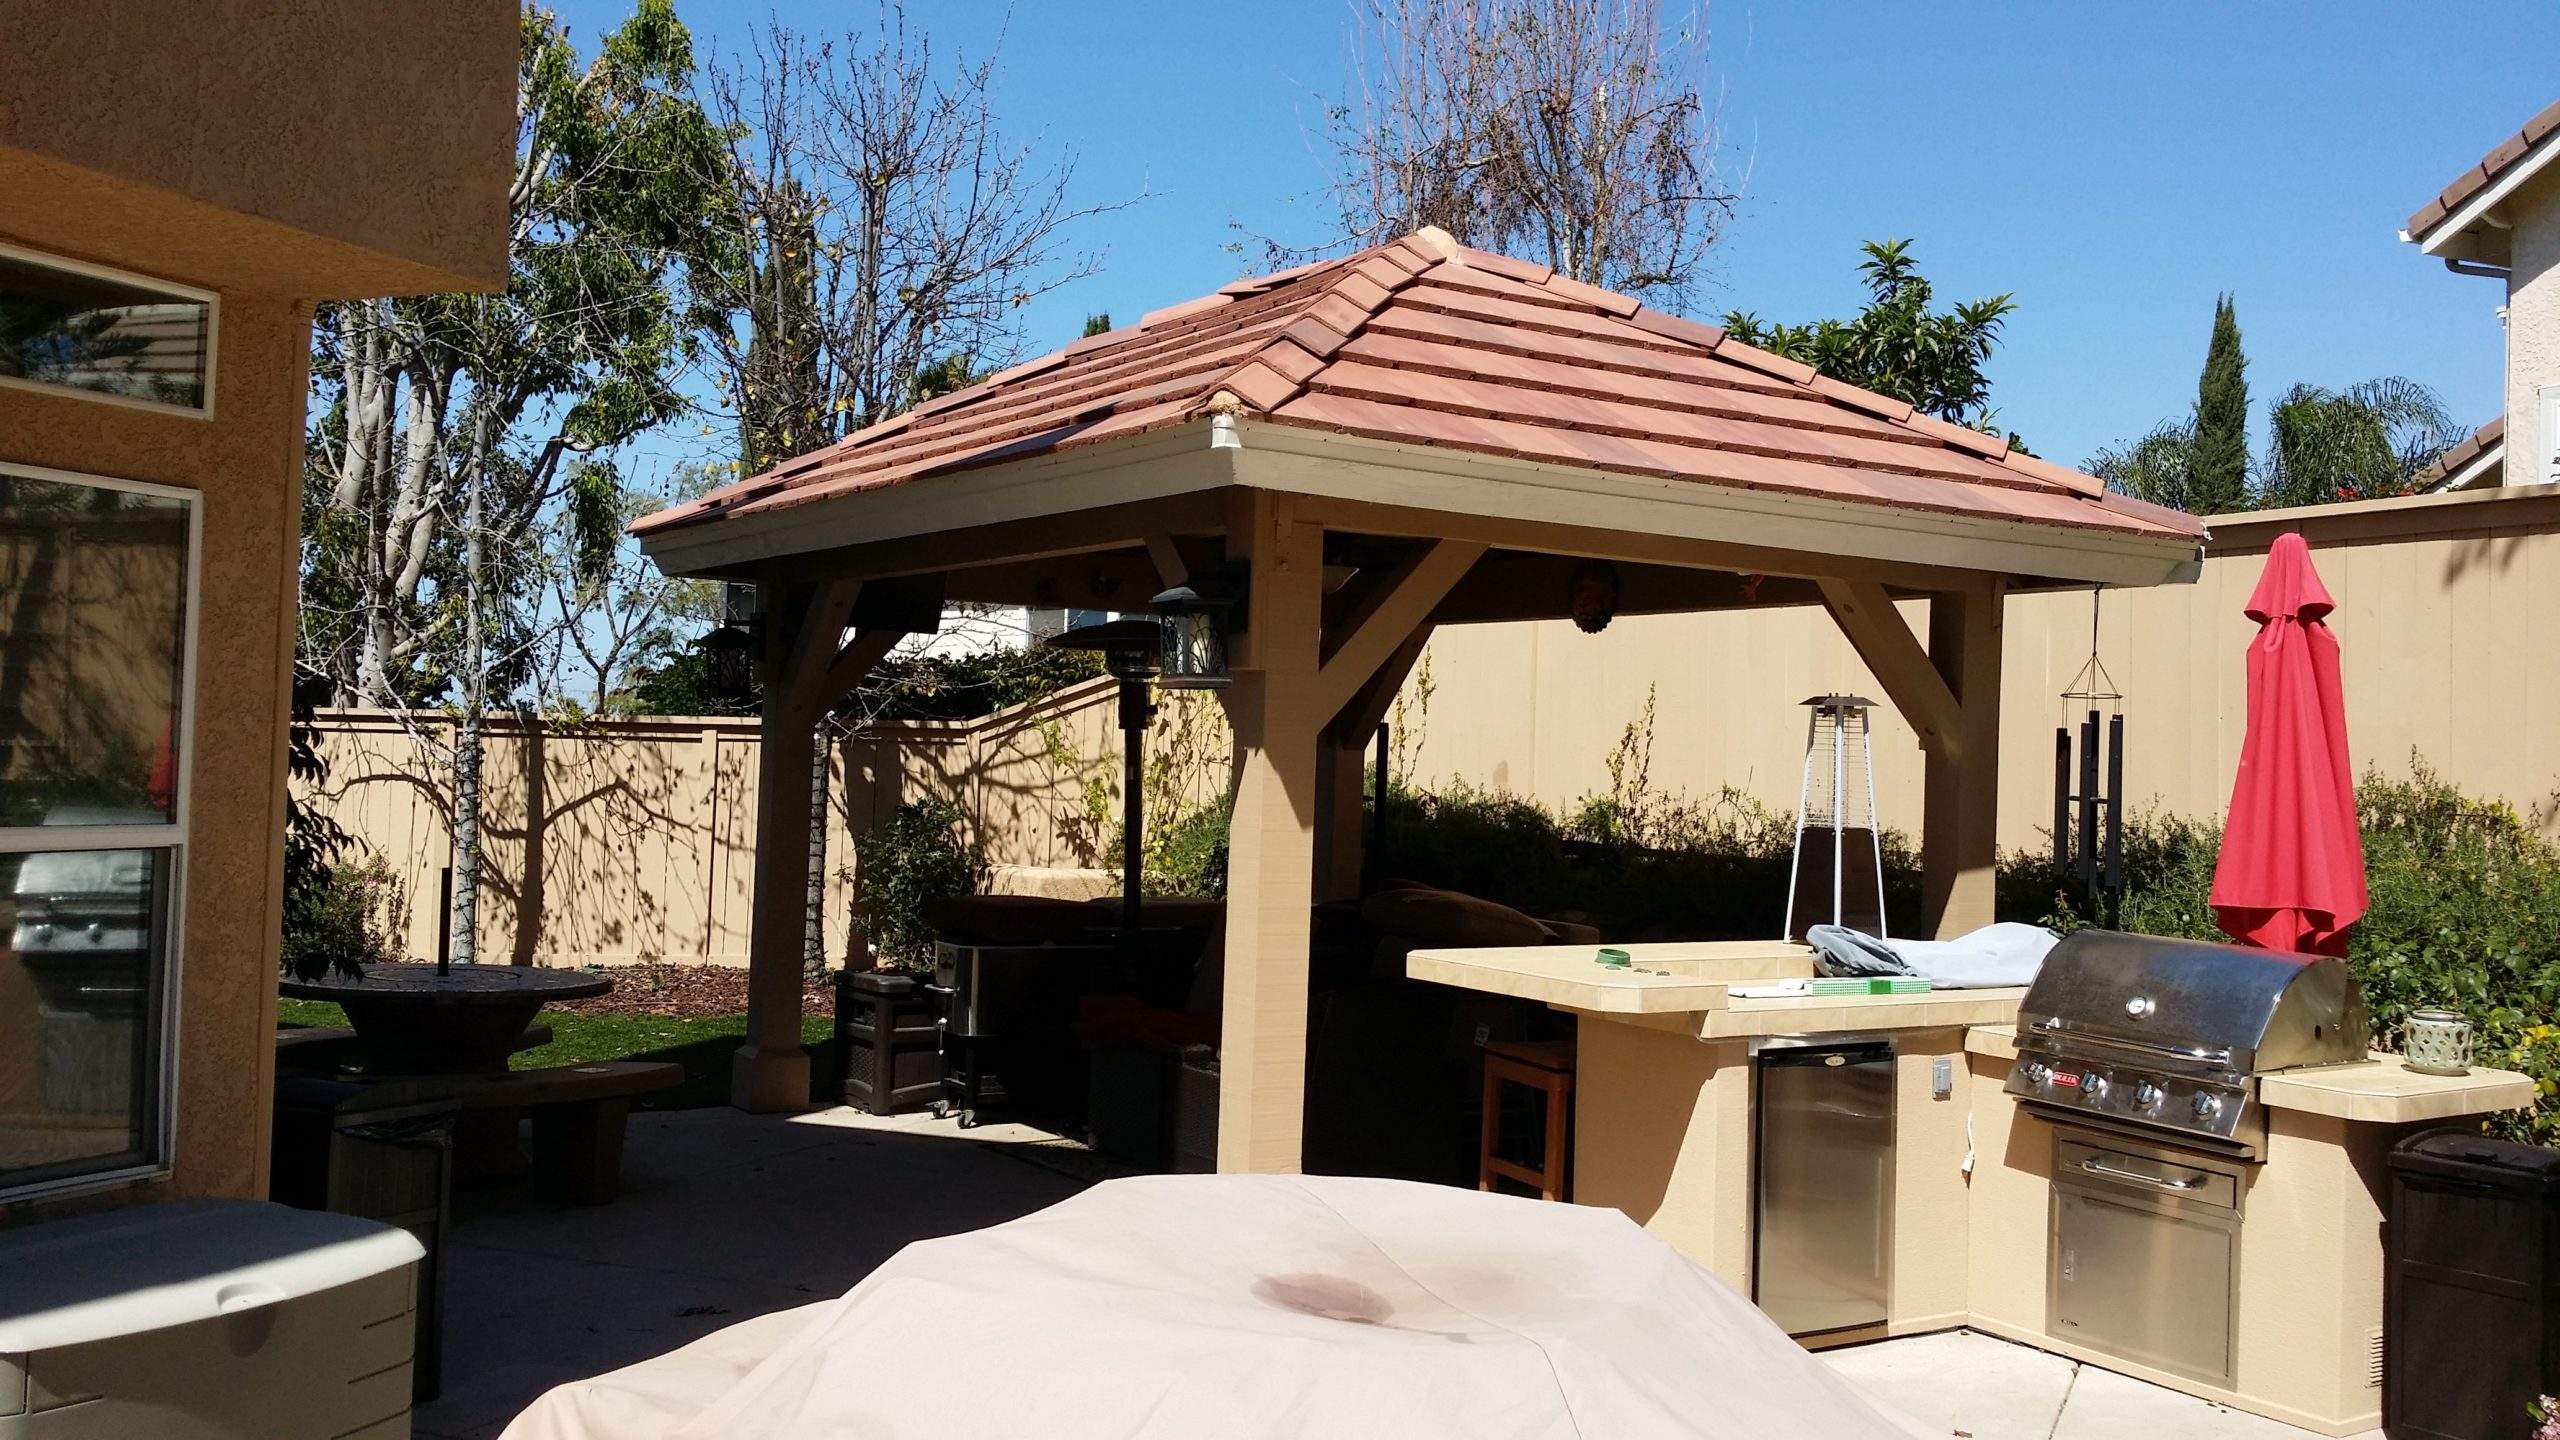 Terracotta roof gazebo